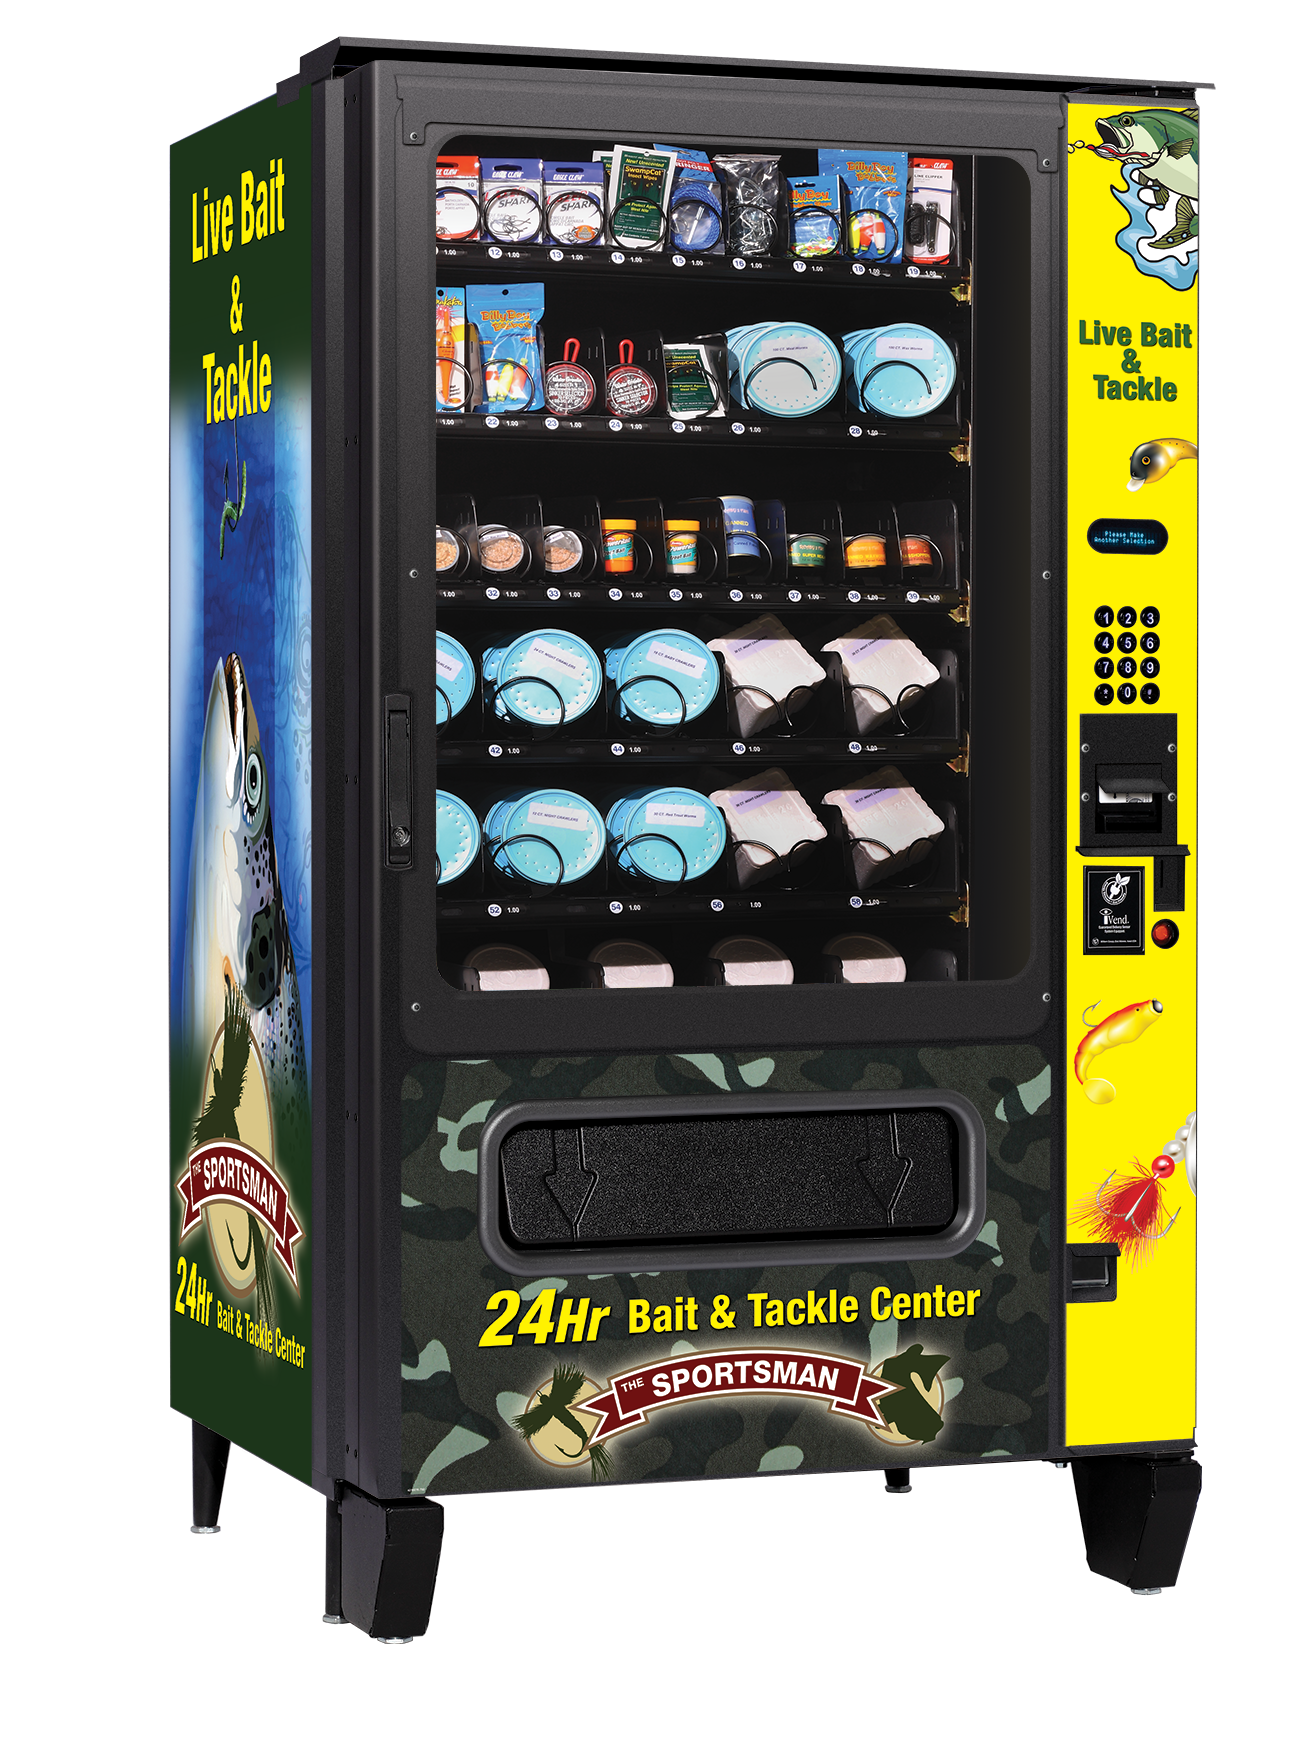 Live Bait Vending com – The future in selling bait today